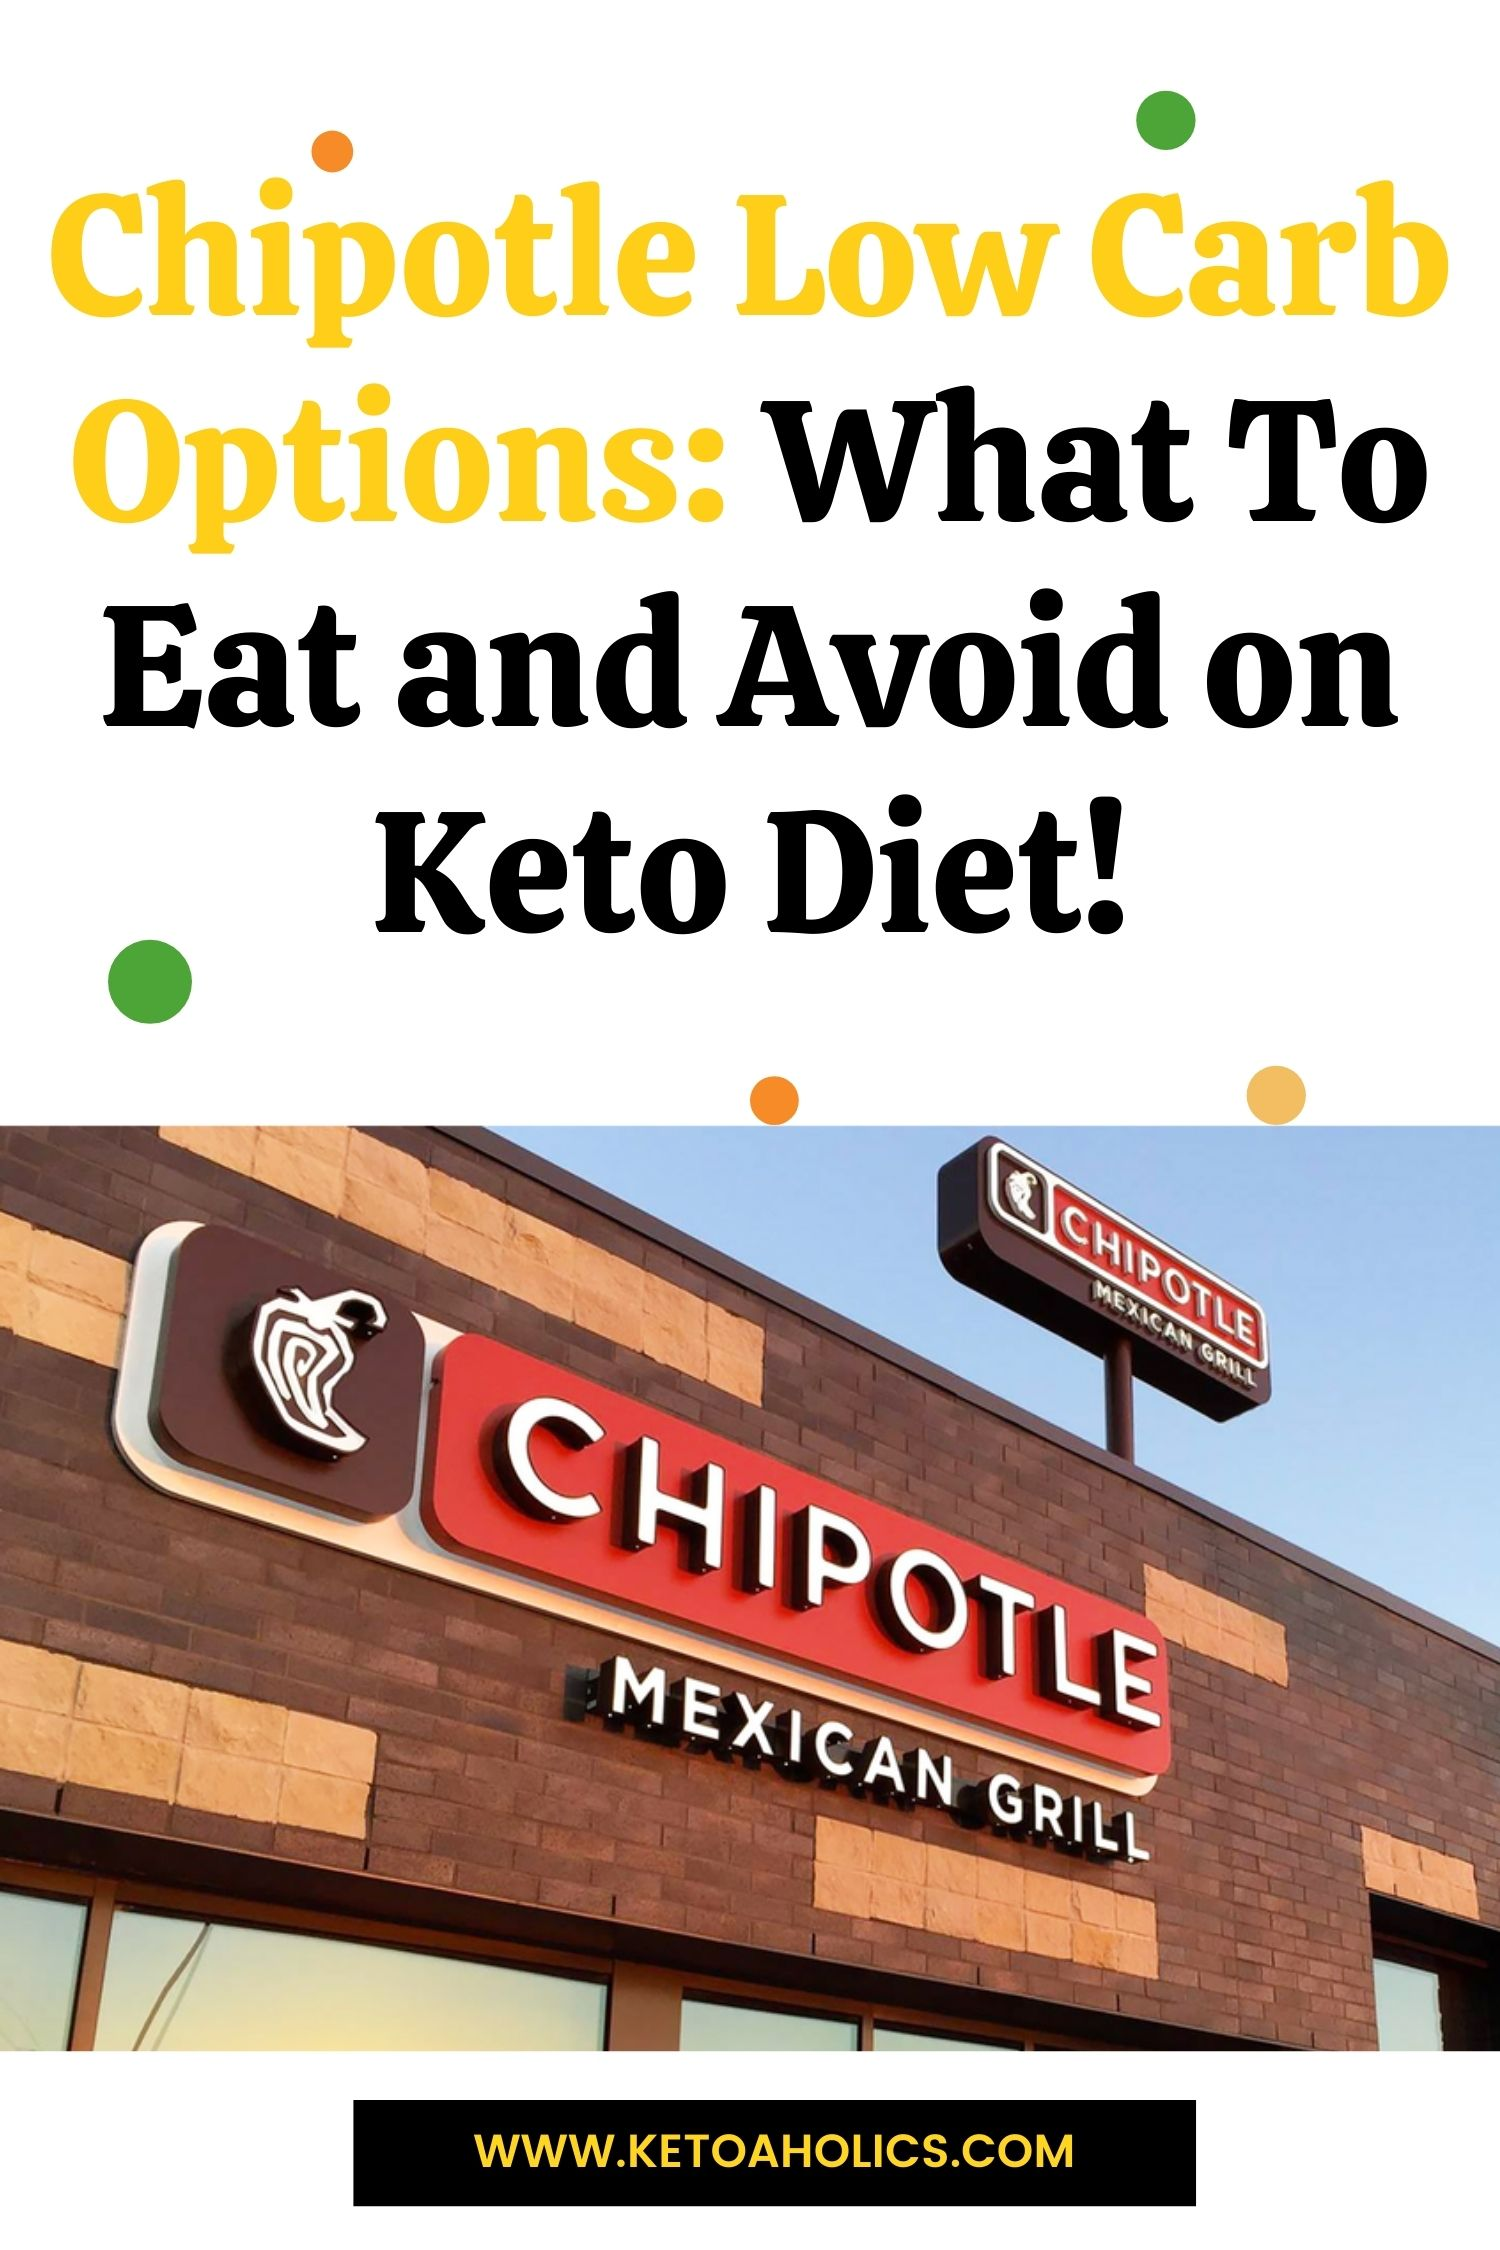 Image of Chipotle Low Carb Options What To Eat and Avoid on Keto Diet! - KetoaHolics.com